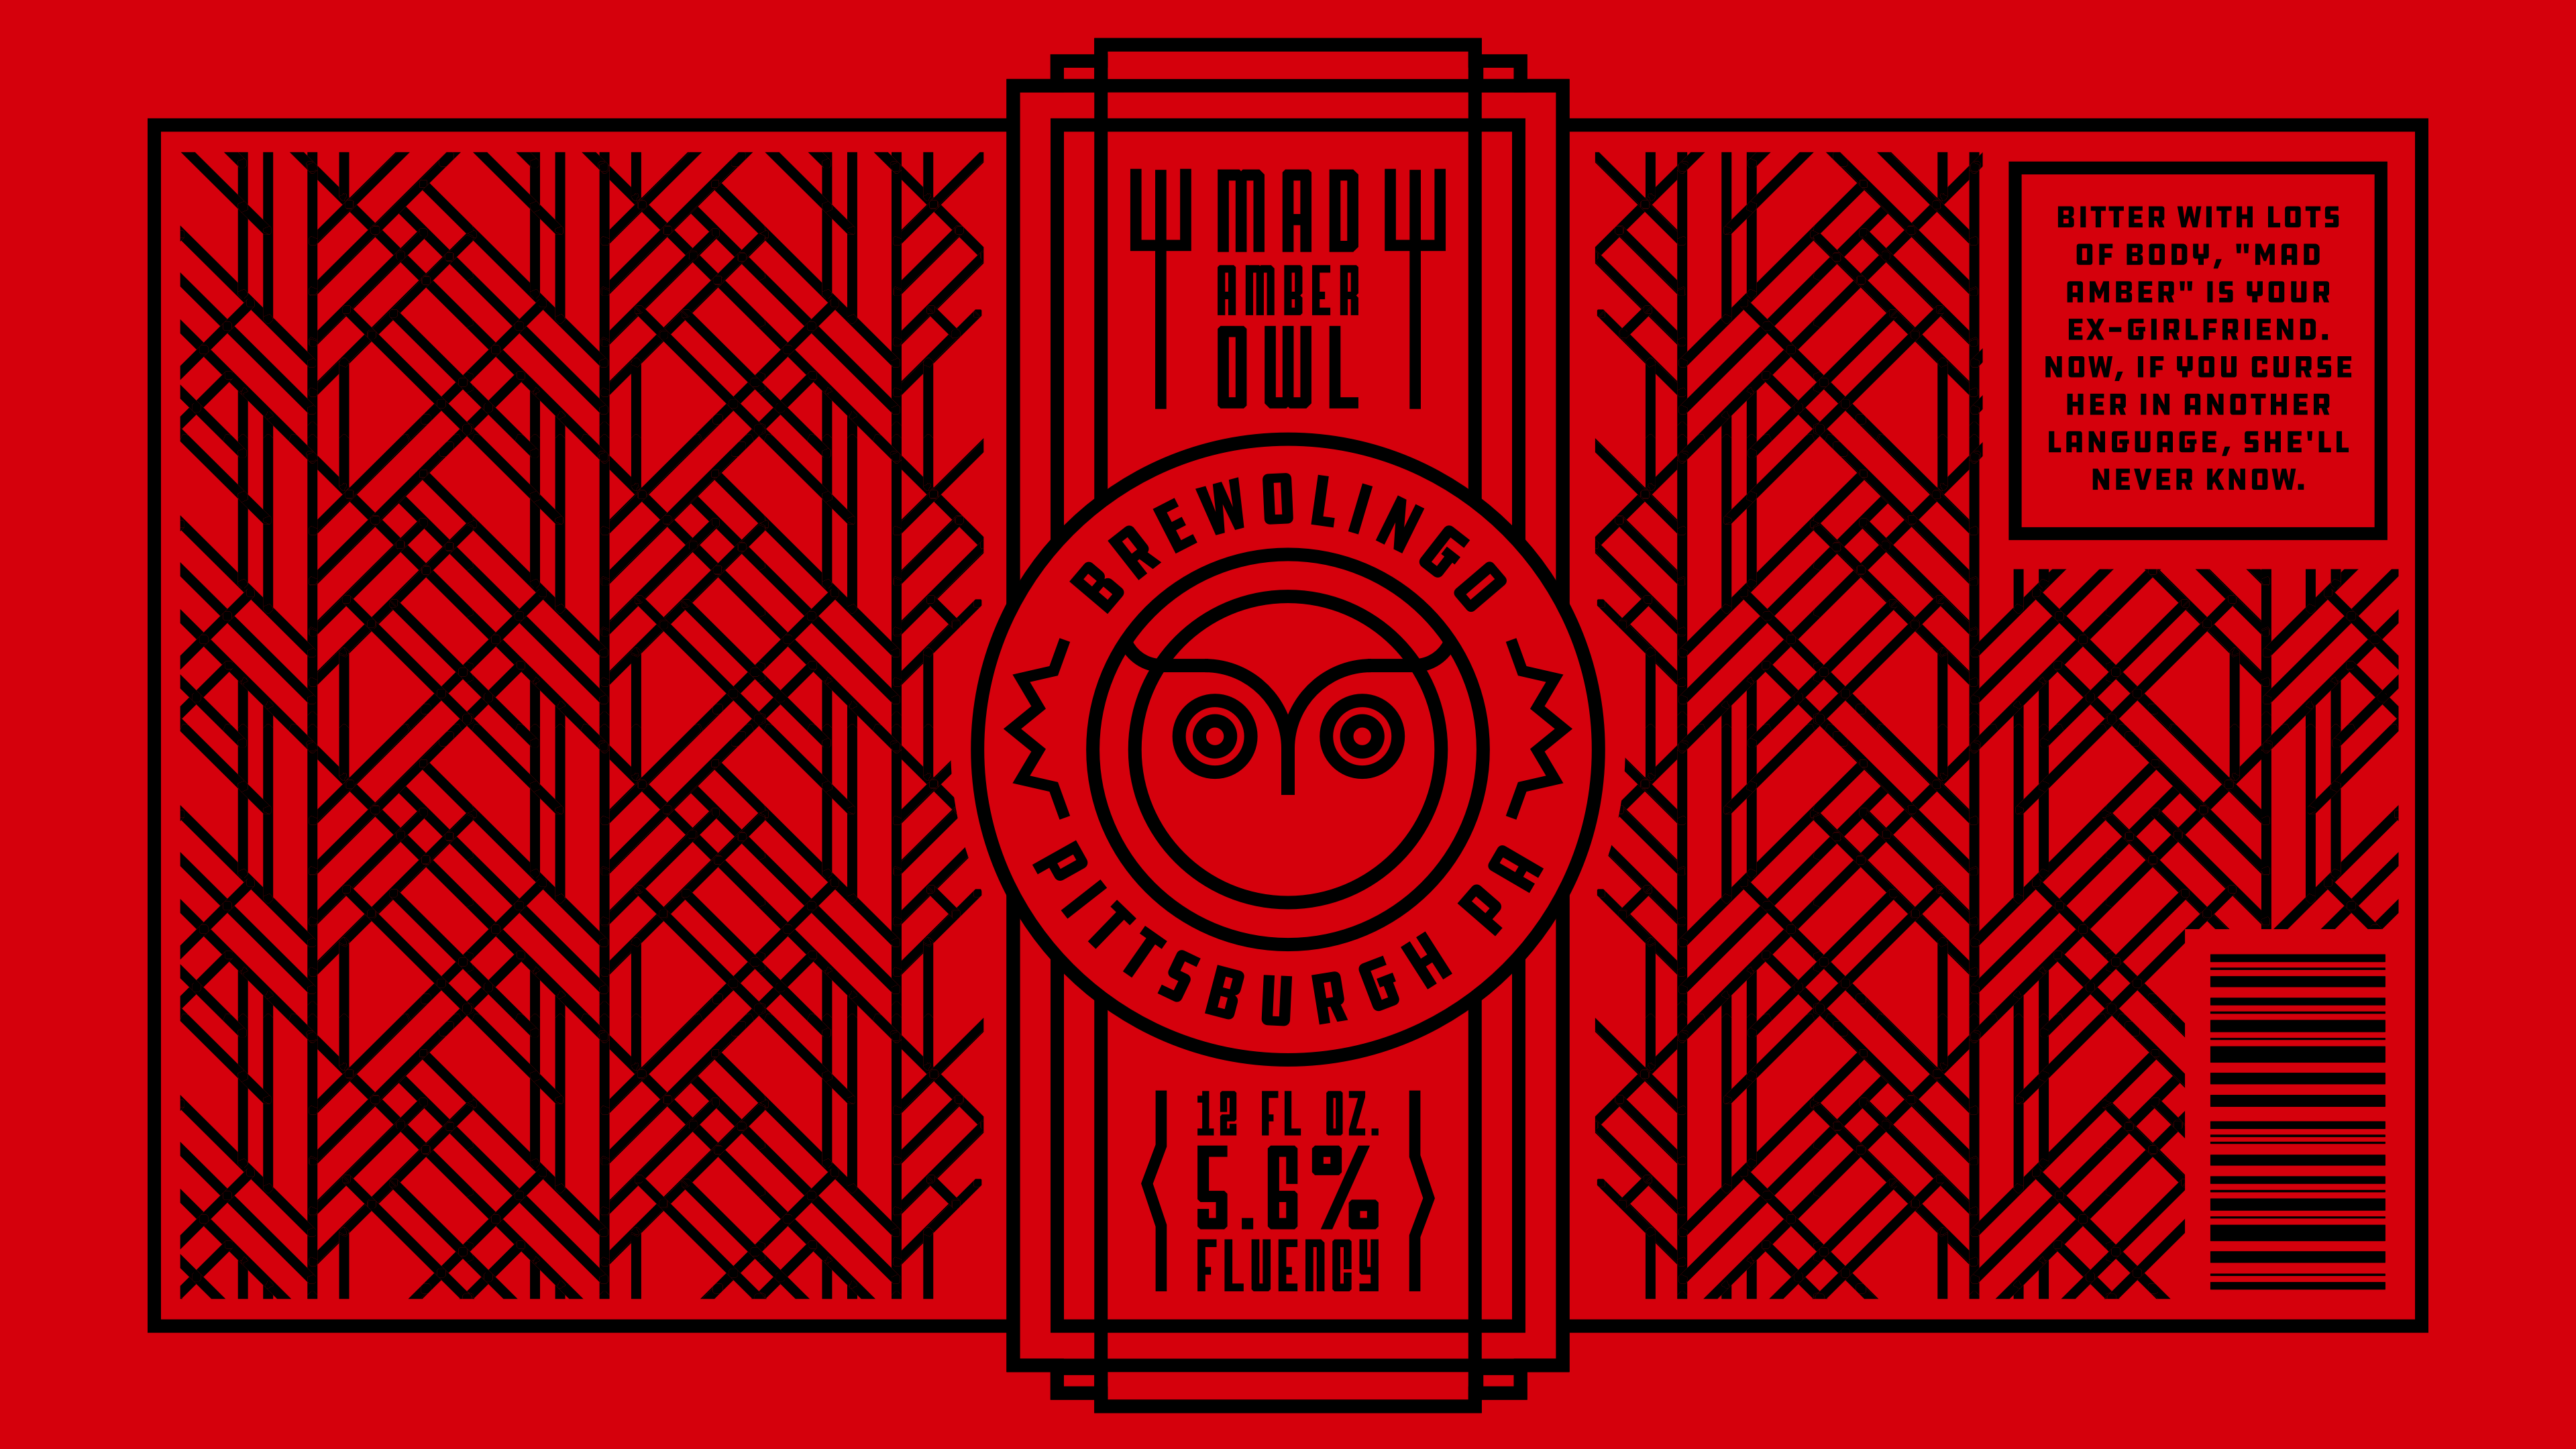 Brewolingo Mad Amber Owl Branding by Jack Morgan